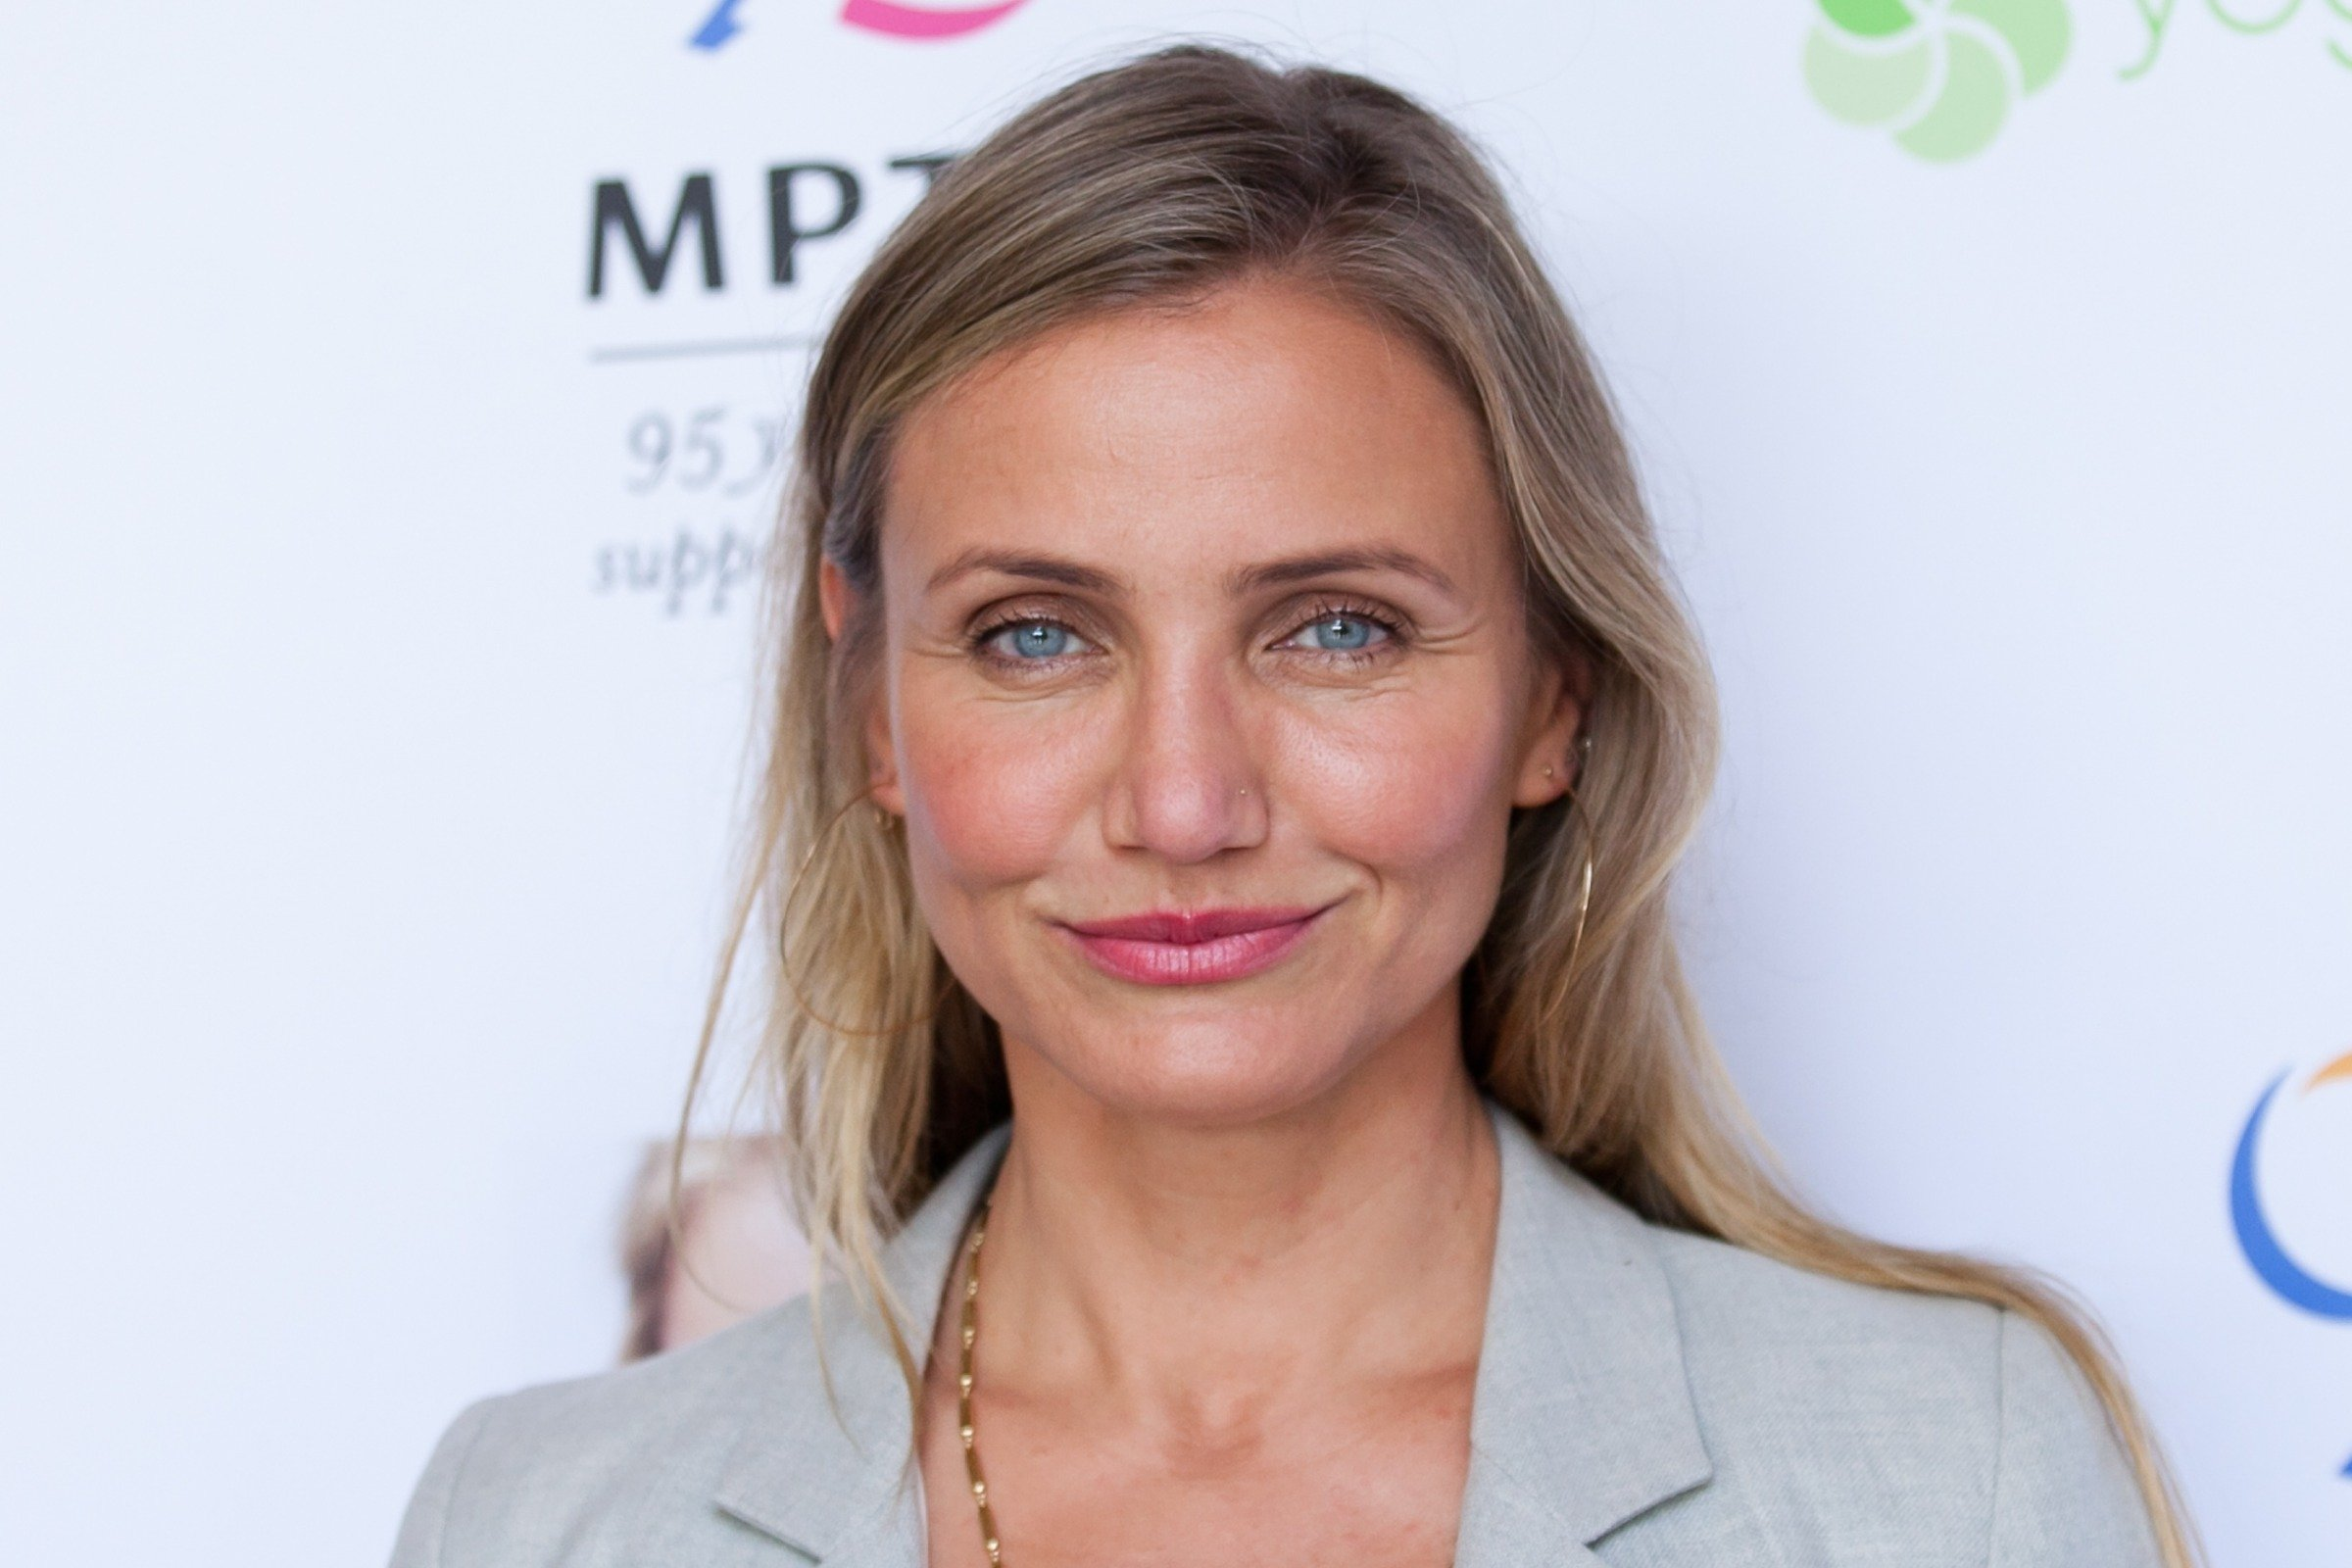 Image Credit: Getty Images/Tibrina Hobson | Cameron Diaz attends the MPTF Celebration for health and fitness